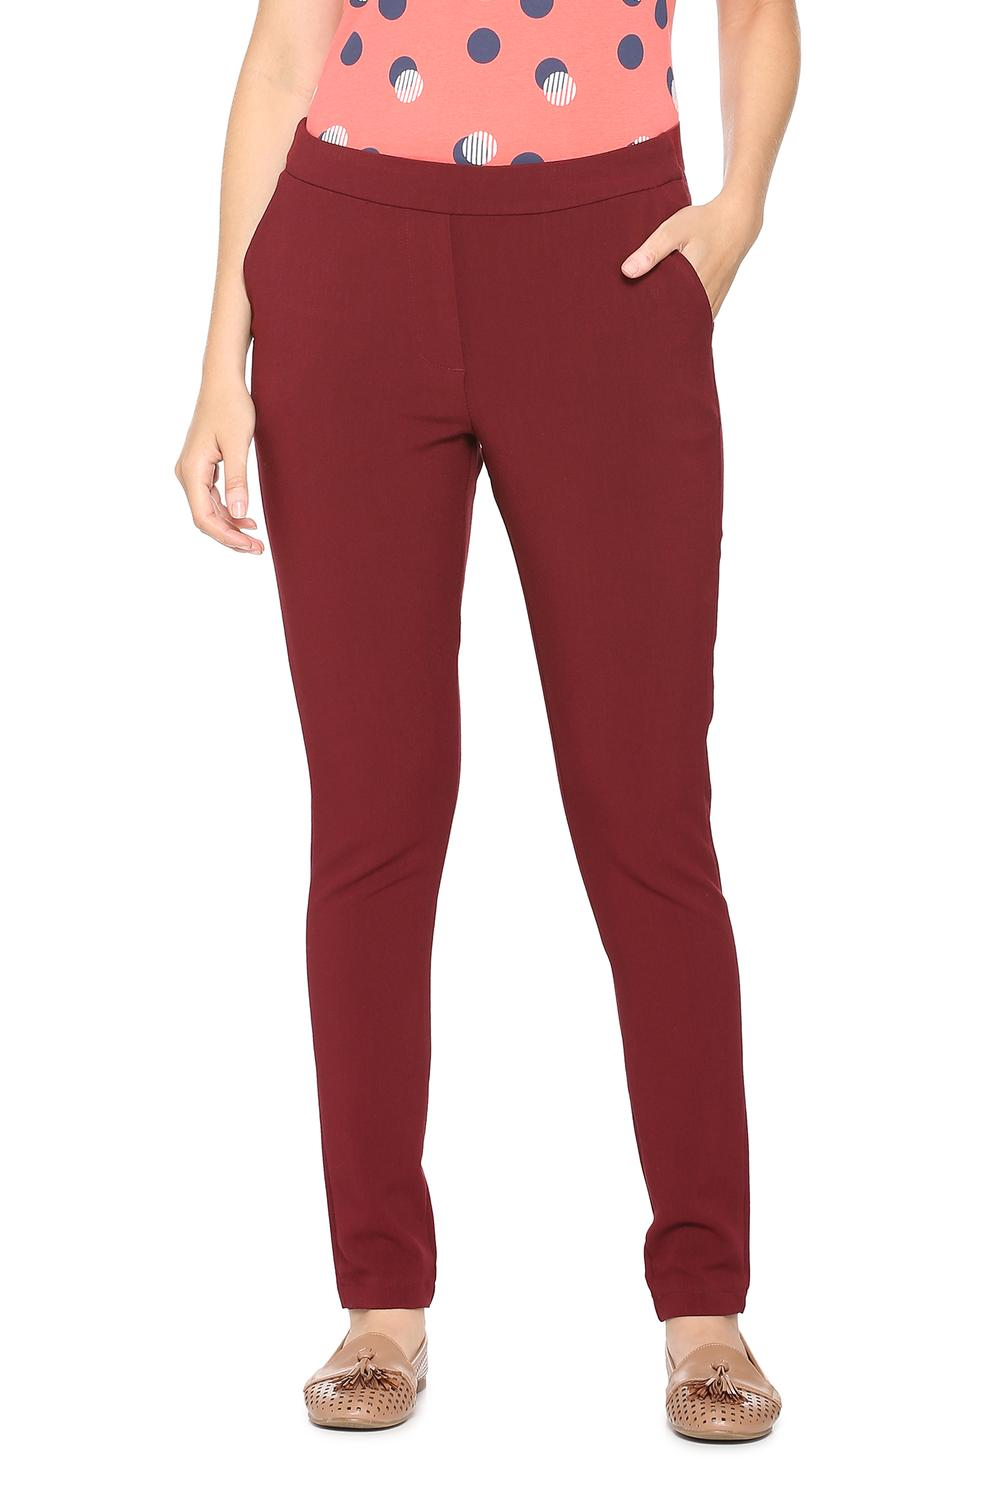 f89527c4f841b4 Solly Trousers & Leggings, Allen Solly Maroon Trousers for Women at  Allensolly.com